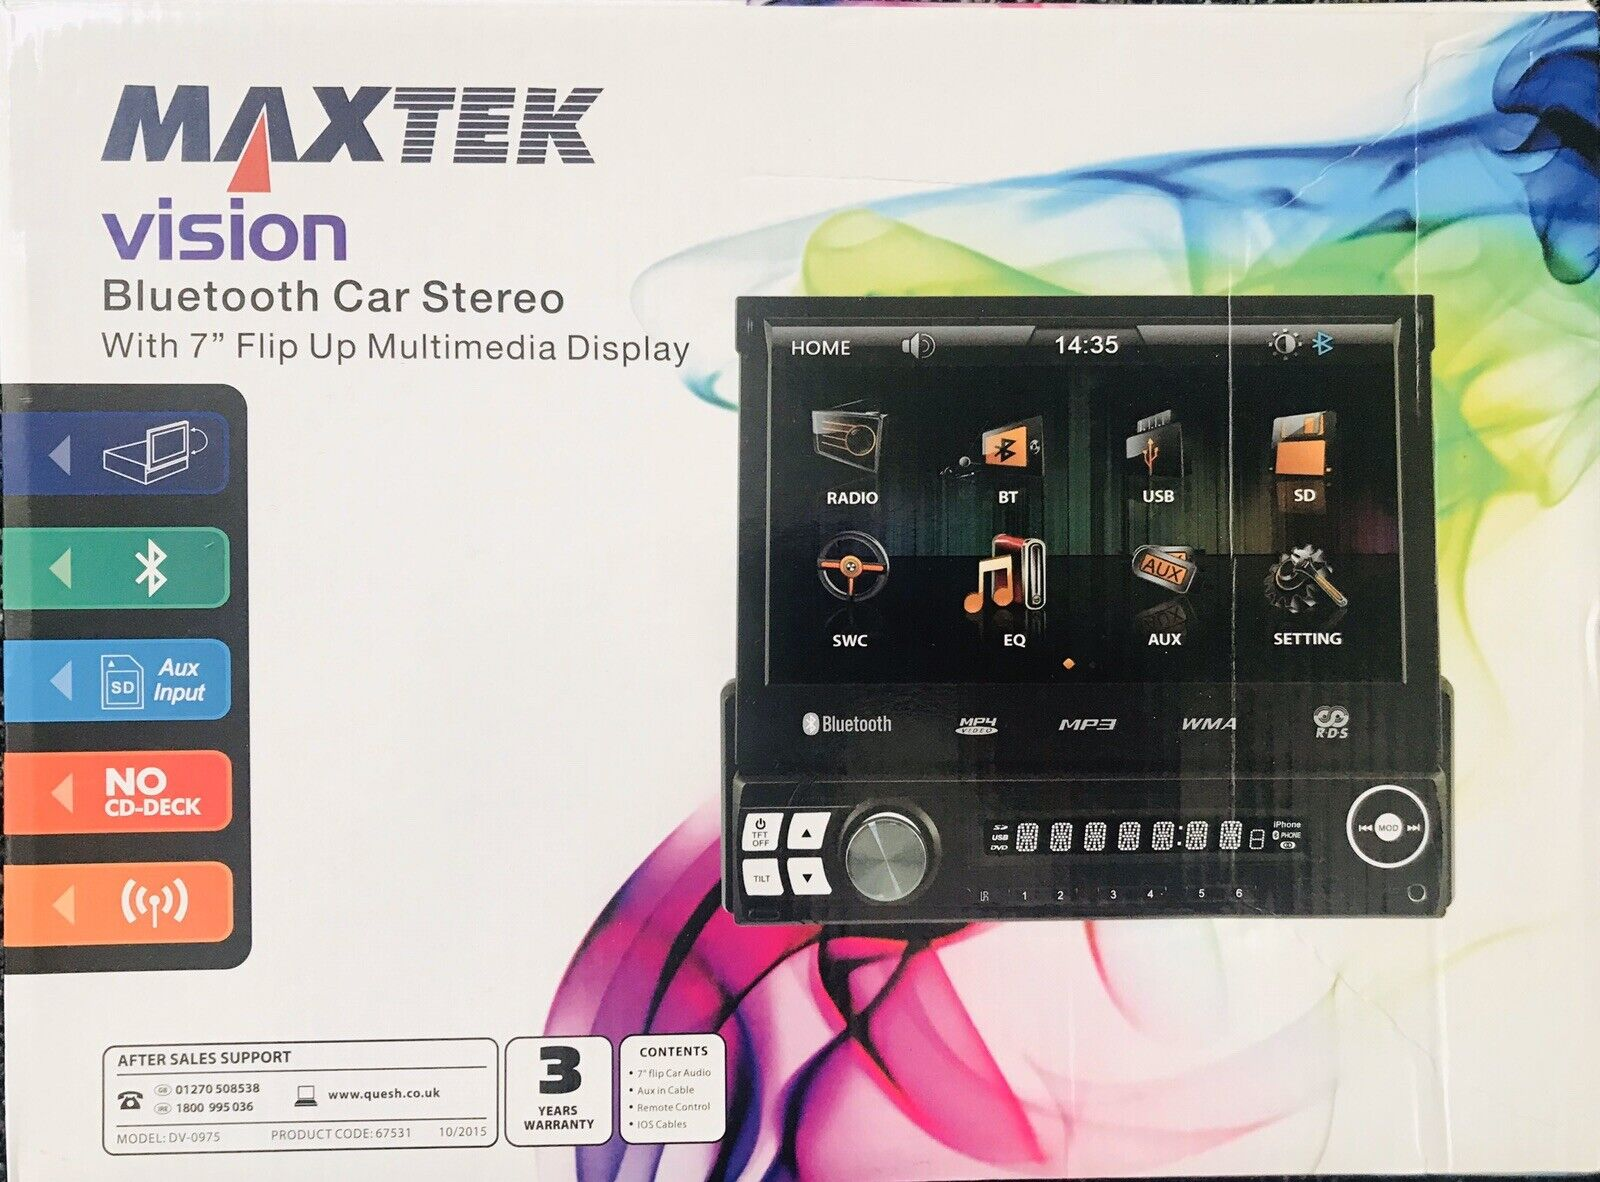 """MAXTEK VISION BLUETOOTH CAR STEREO WITH 7/"""" FLIP UP MULTIMEDIA DISPLAY REMOTE"""